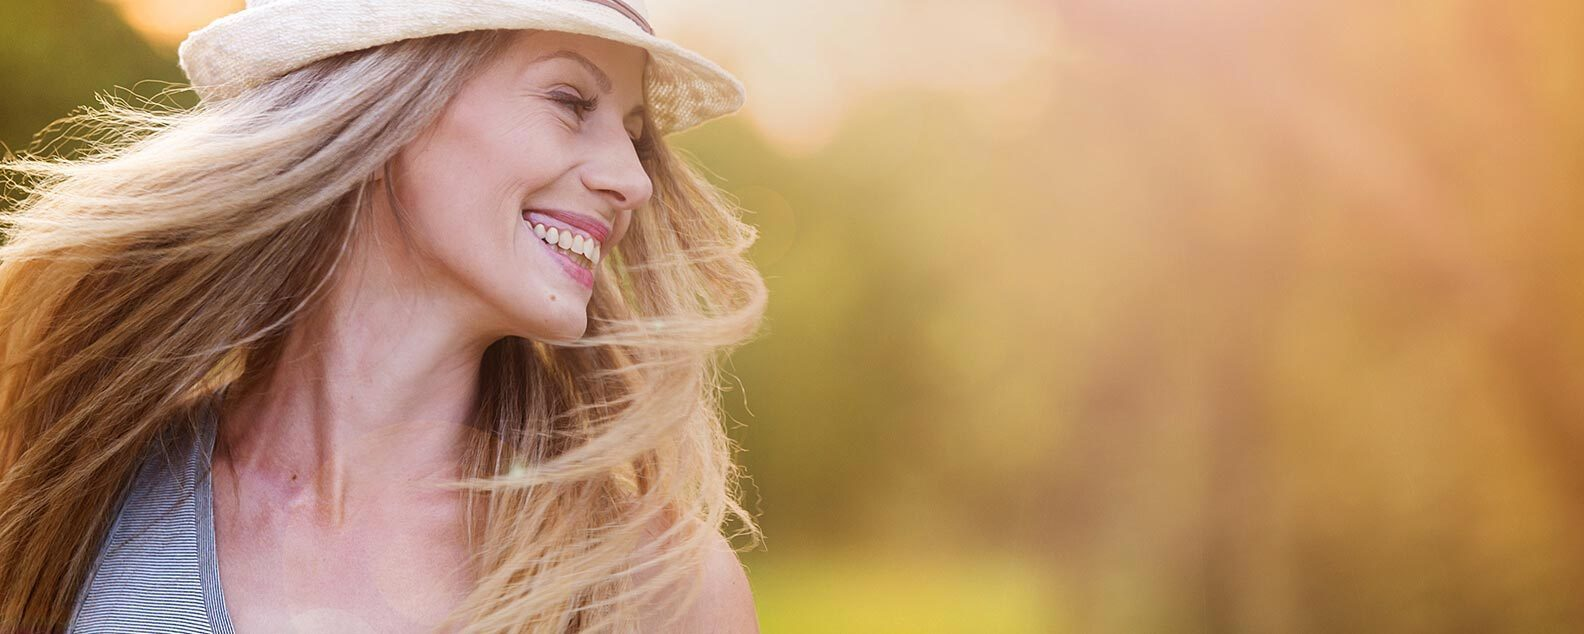 Welcome to Dores Dental – General and Cosmetic Dentistry in Longmeadow, Massachusetts